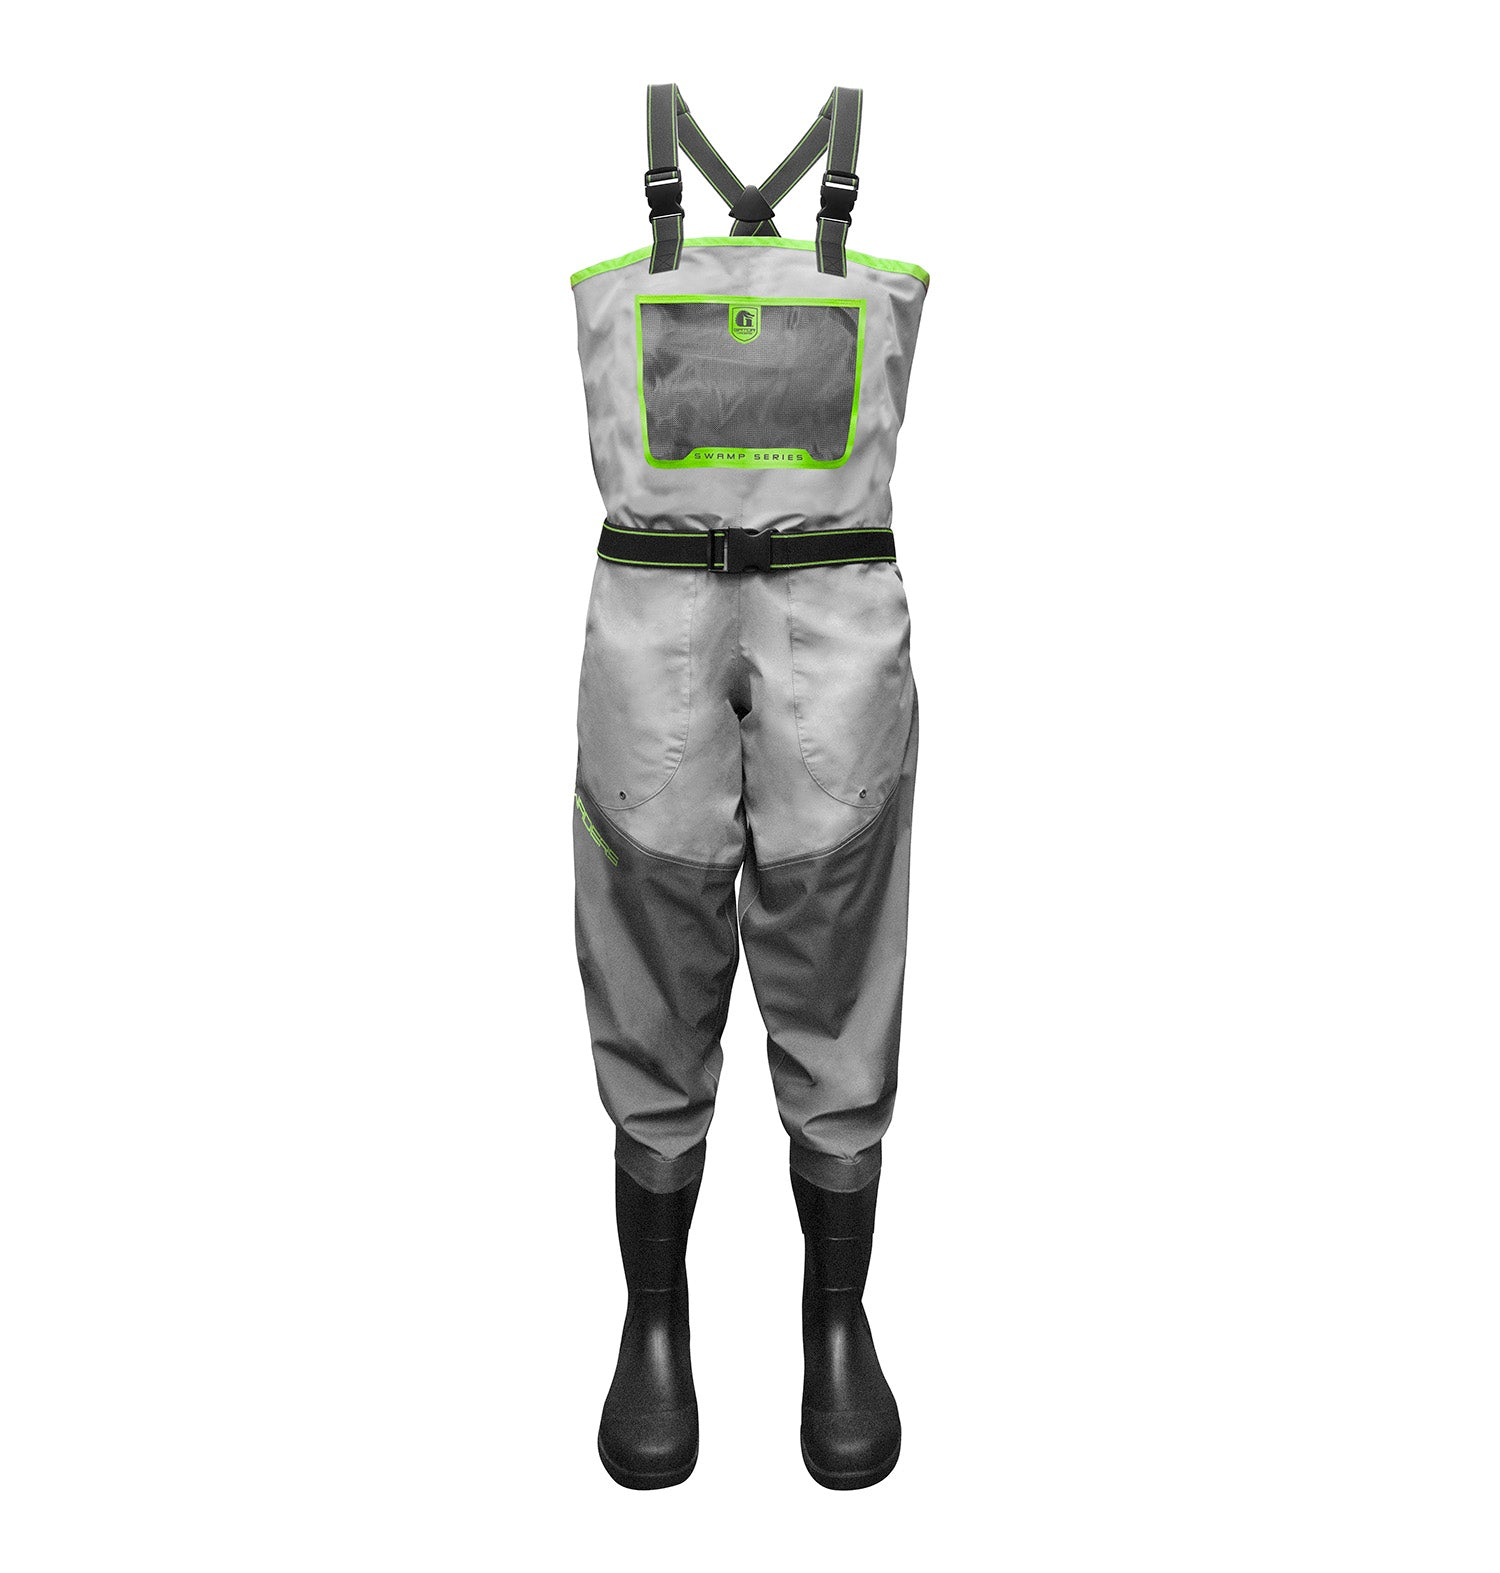 Men's Swamp Series Waders